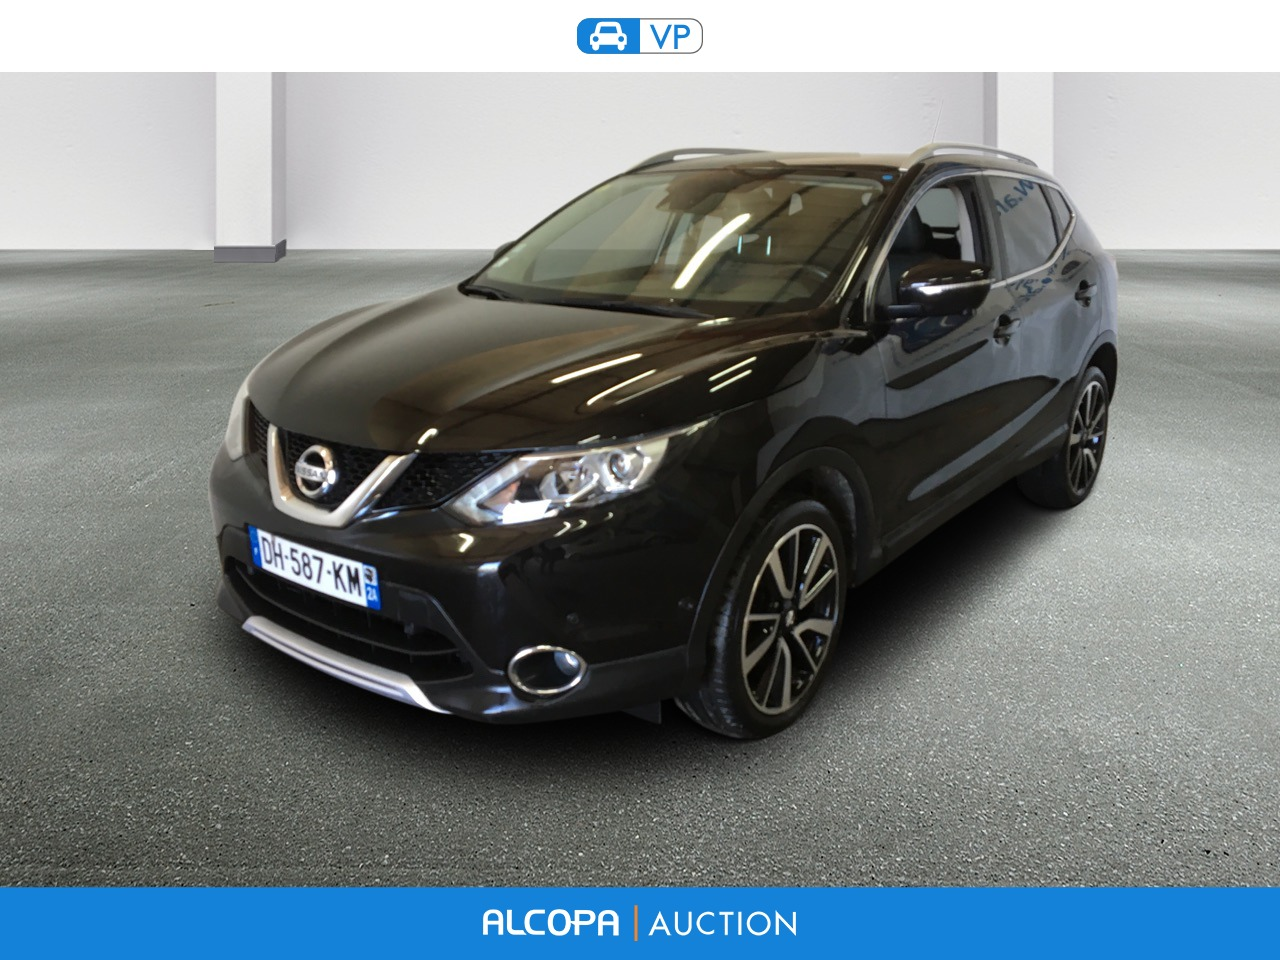 nissan qashqai 11 2013 04 2016 qashqai 1 6 dci 130 stop start tekna alcopa auction. Black Bedroom Furniture Sets. Home Design Ideas